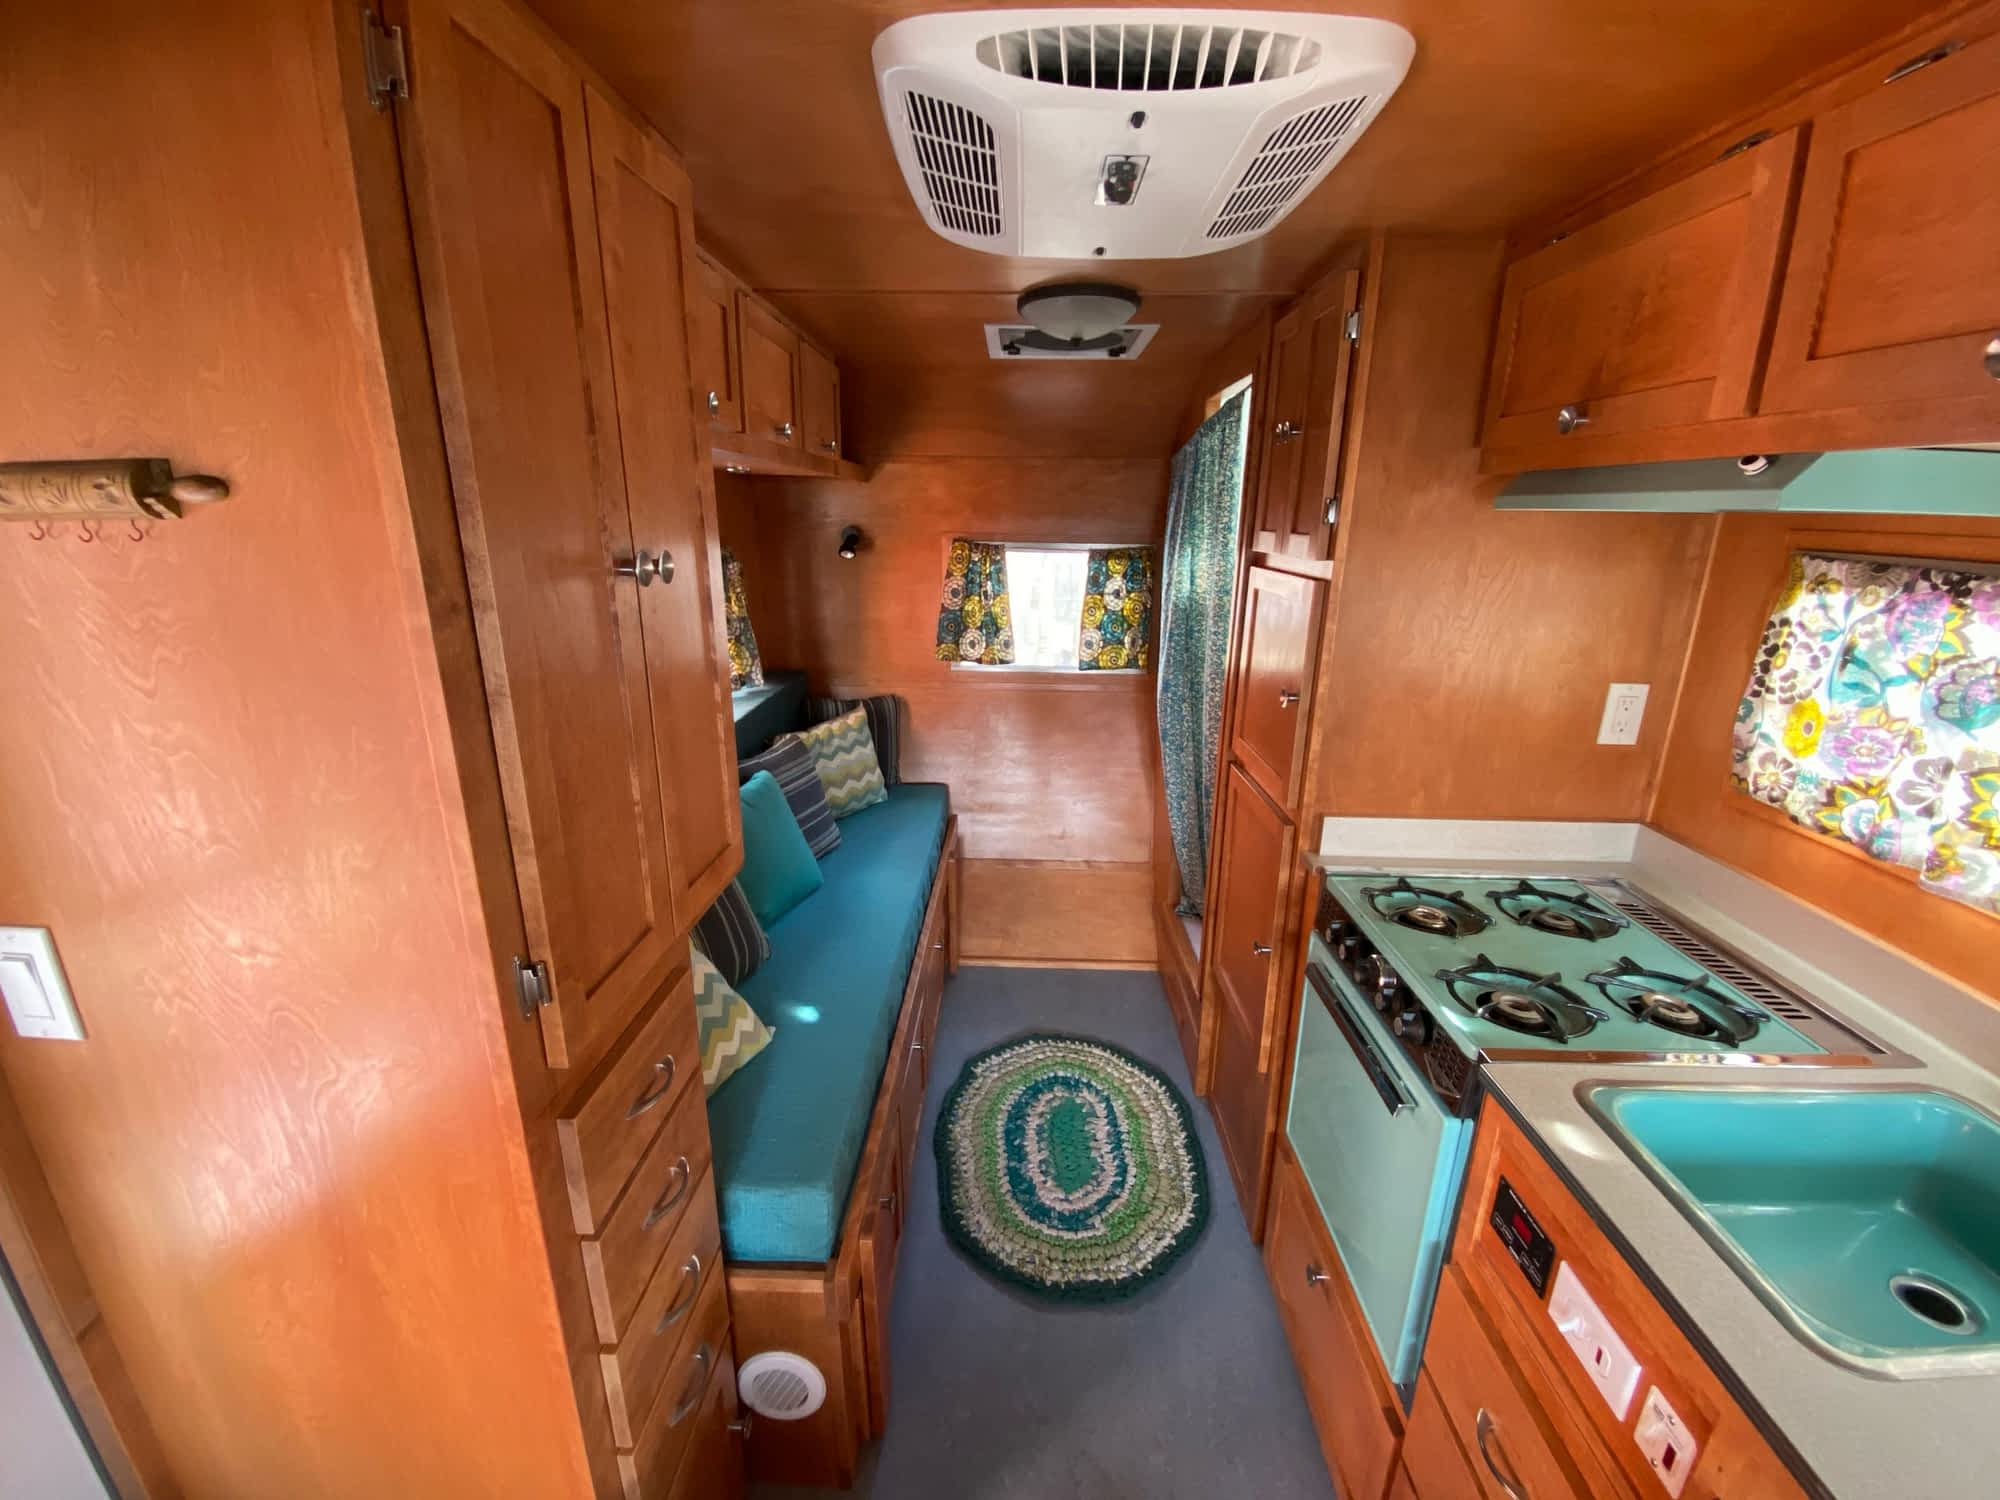 Airstream Restoration Shop located in Montana. We restore vintage trailers from the US and Canada here.